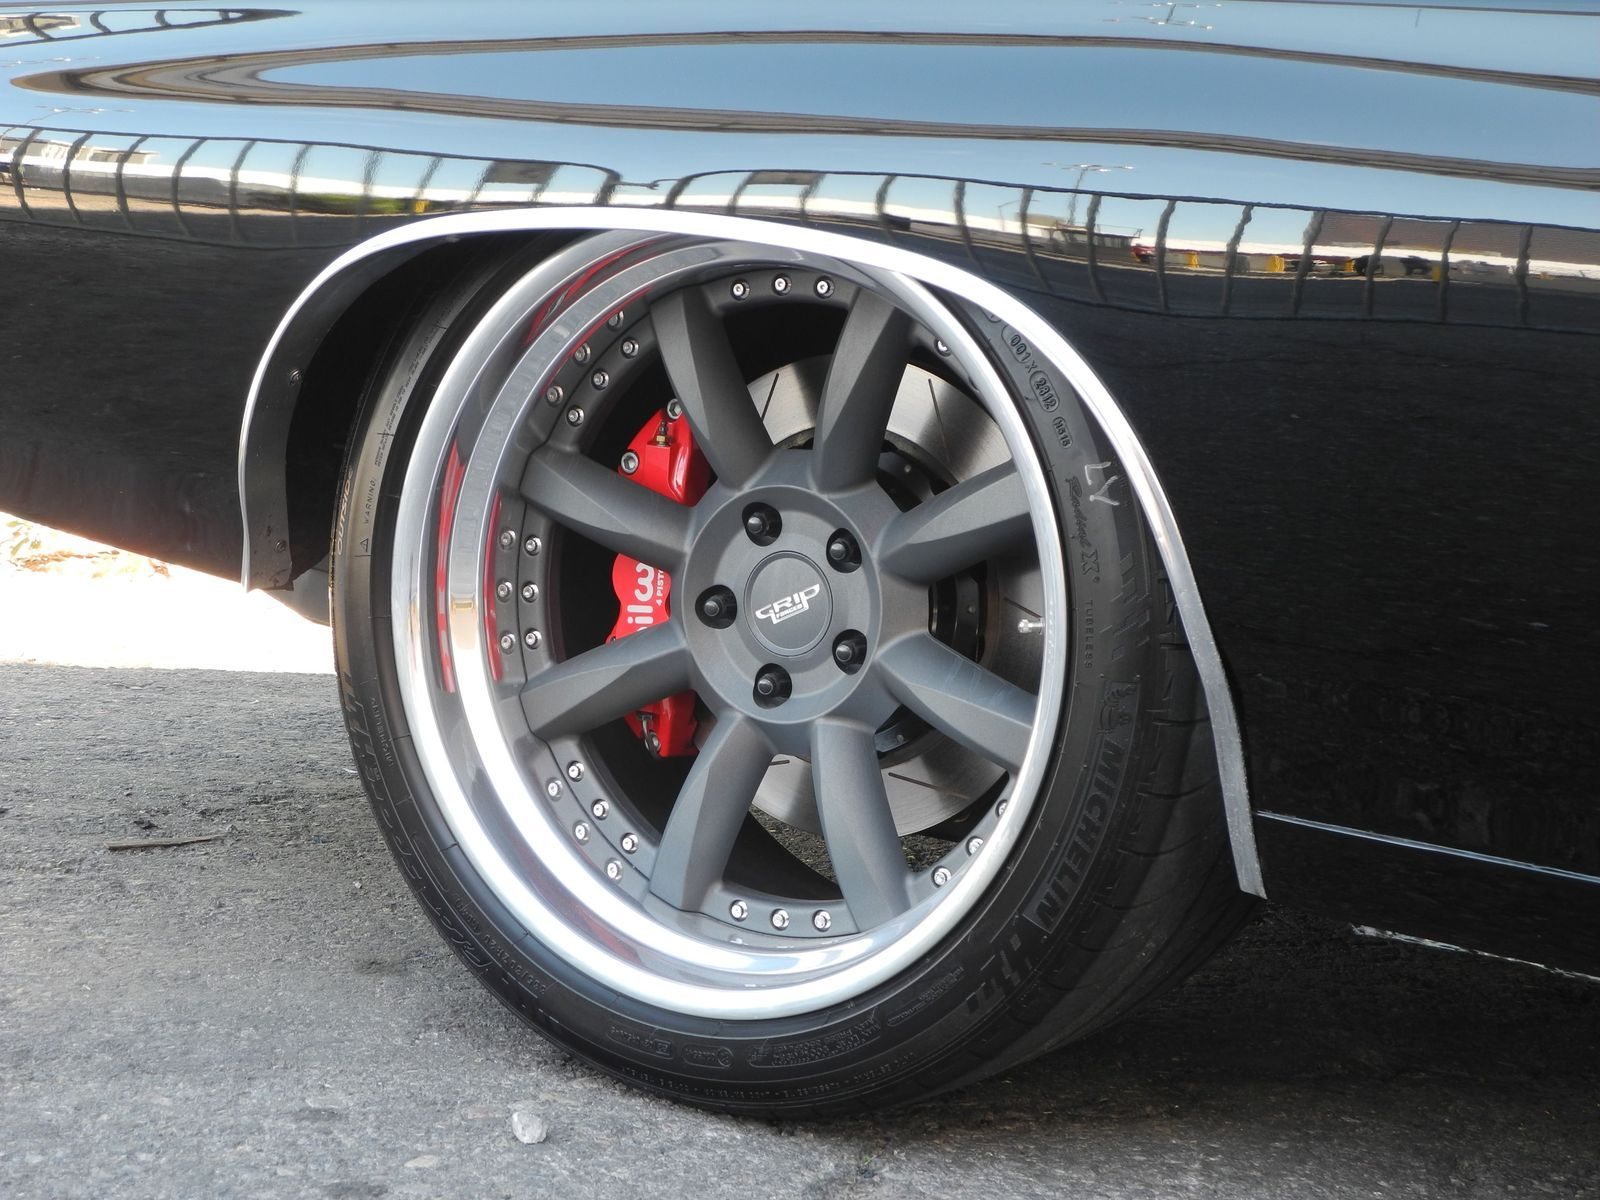 1970 Chevrolet Chevelle | Greg Heinrich's 1970 Chevelle on Grip Equipped Laguna Wheels at the 2014 SEMA Show